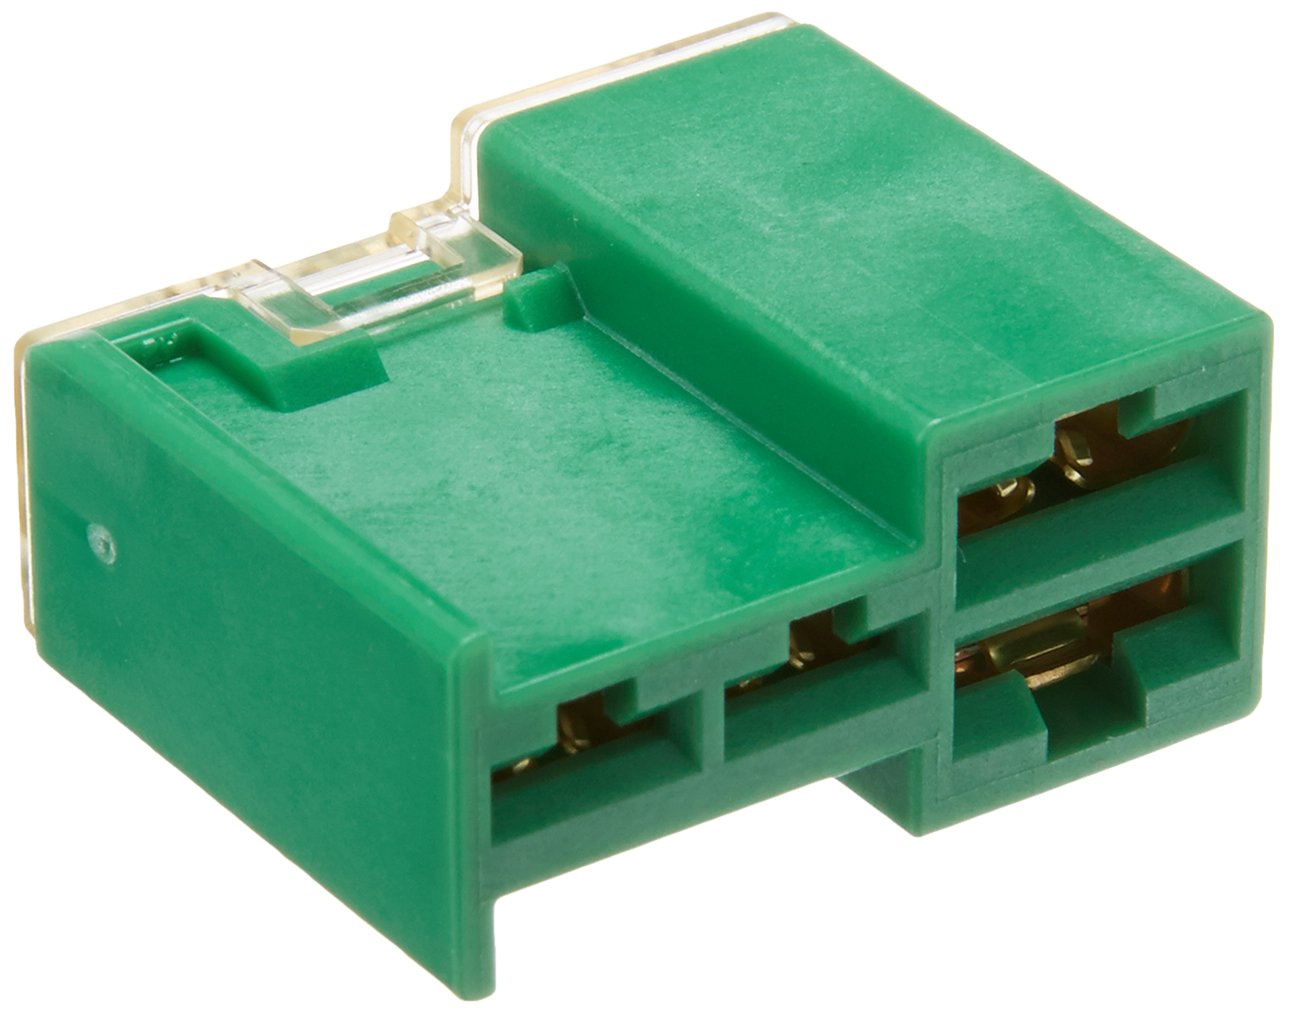 6A5A36E Nissan Elgrand Fuse Box Location | Wiring Resources on nissan main fuse, nissan safety relay, nissan hood latch, nissan gas cap, nissan air cleaner, nissan iac valve, nissan tie rod, nissan frontier fuses and relays, nissan flywheel, nissan ignition lock, nissan brake line, nissan a/c relay, nissan pickup bed, nissan control module, nissan fuel cap, nissan frontier fuse panel, nissan temp sensor, nissan fuse boxes, nissan pickup coil, nissan altima 2005 fuse list,